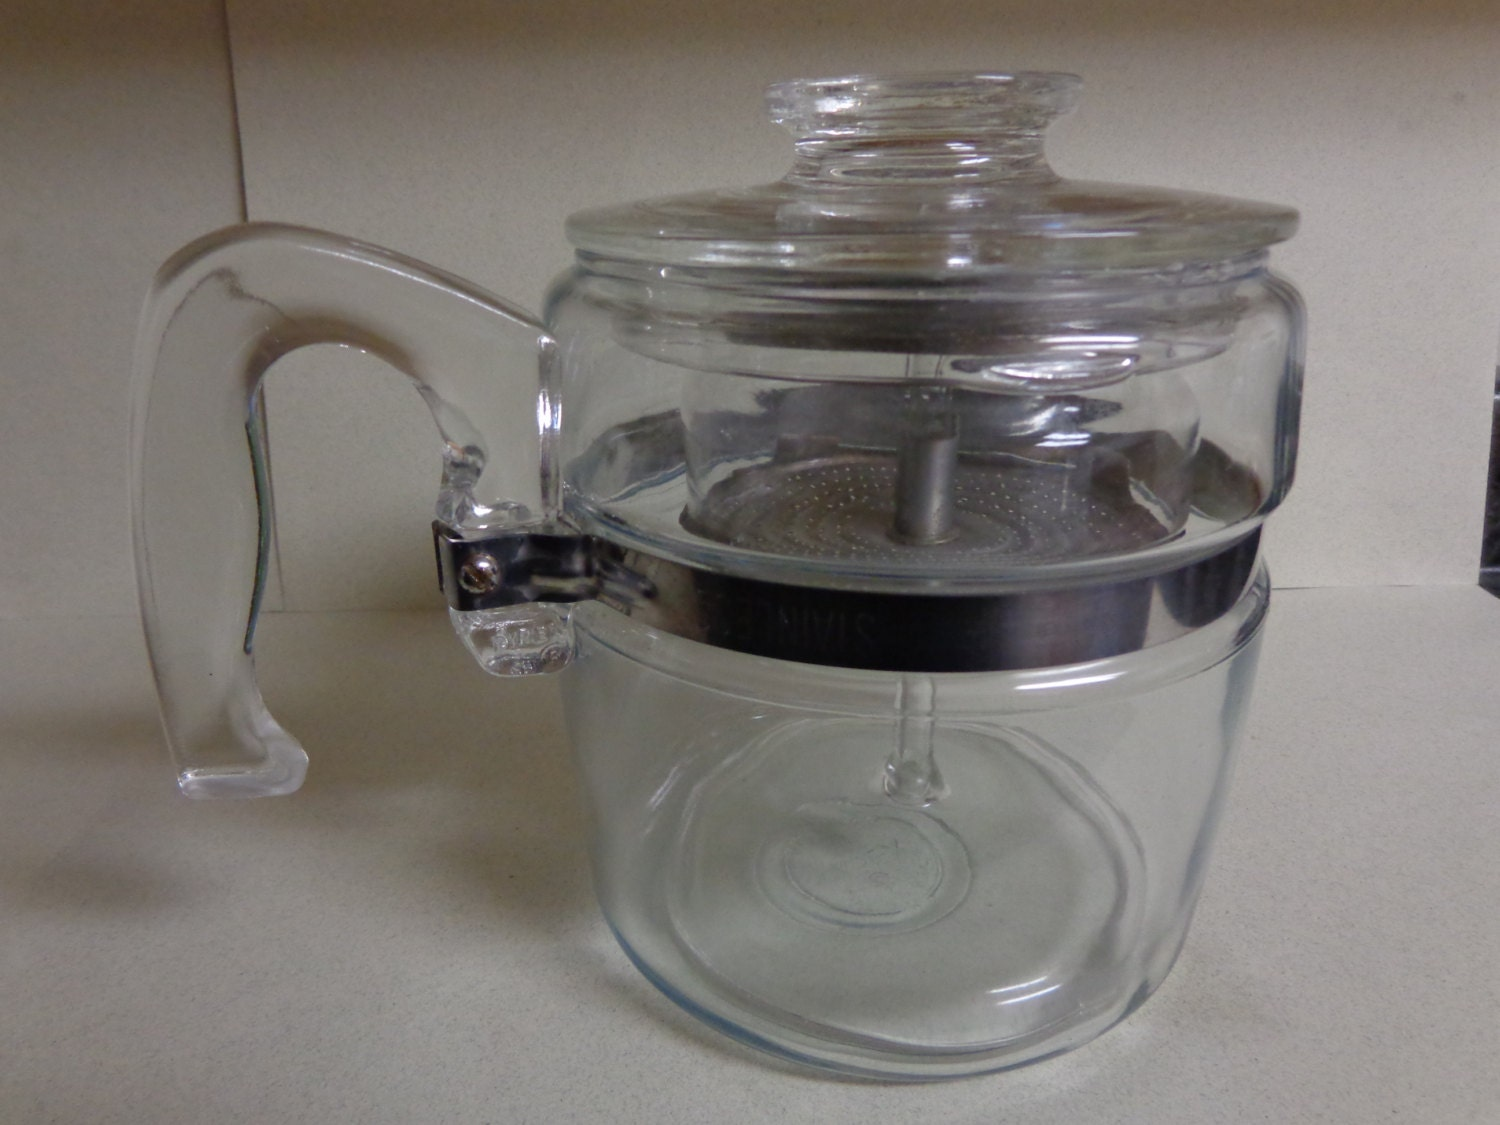 Vintage Pyrex Flameware Glass Percolator Coffee Pot 4 6 Cup